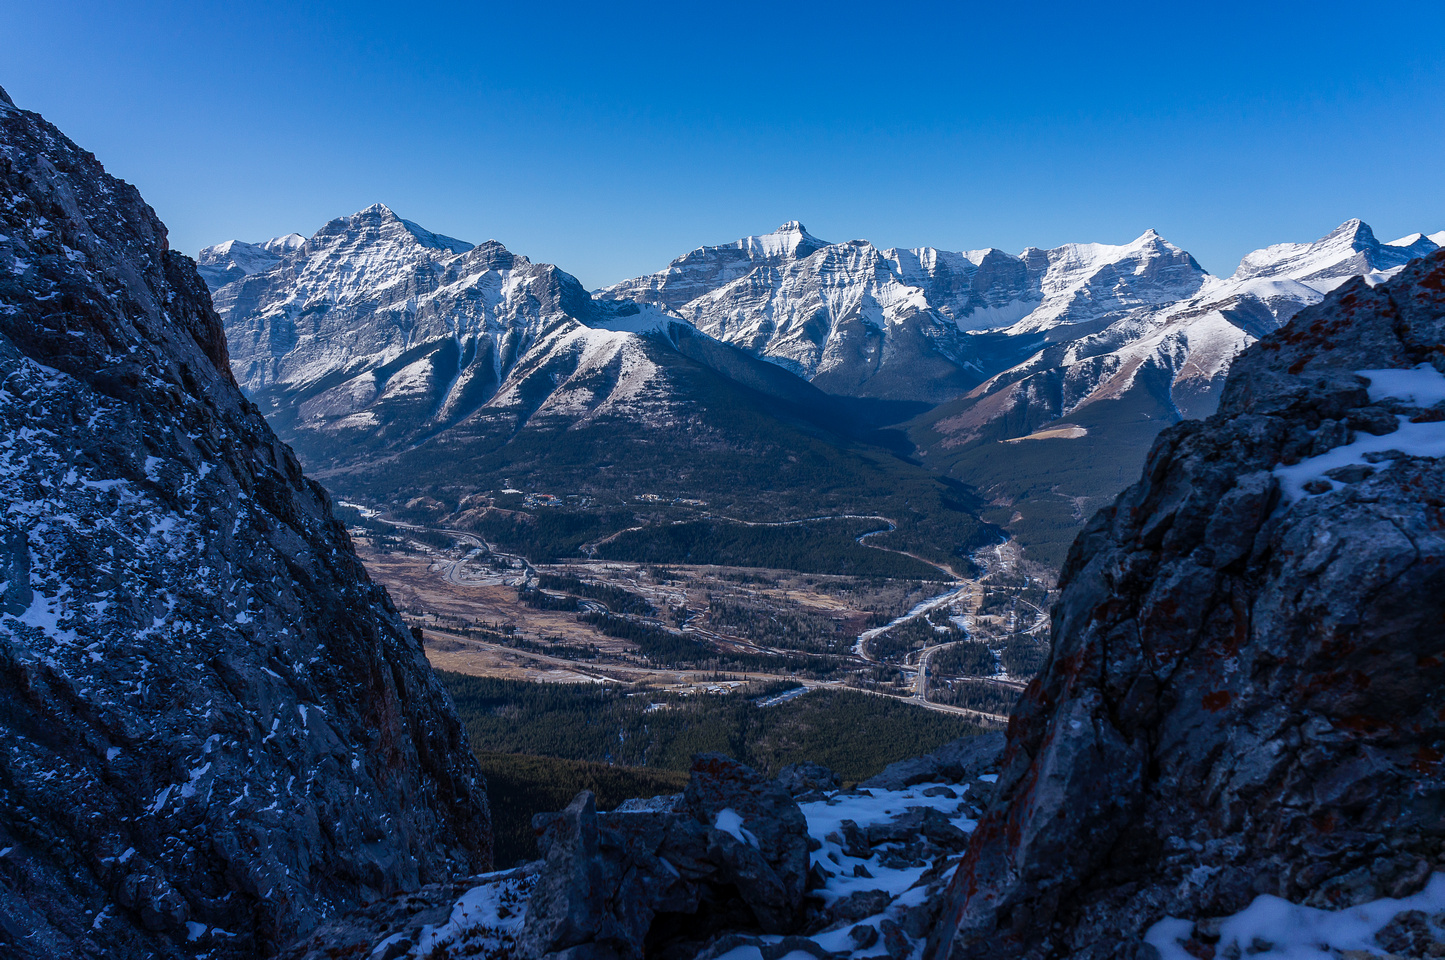 Kananaskis Village through a gap in the upper ridge.